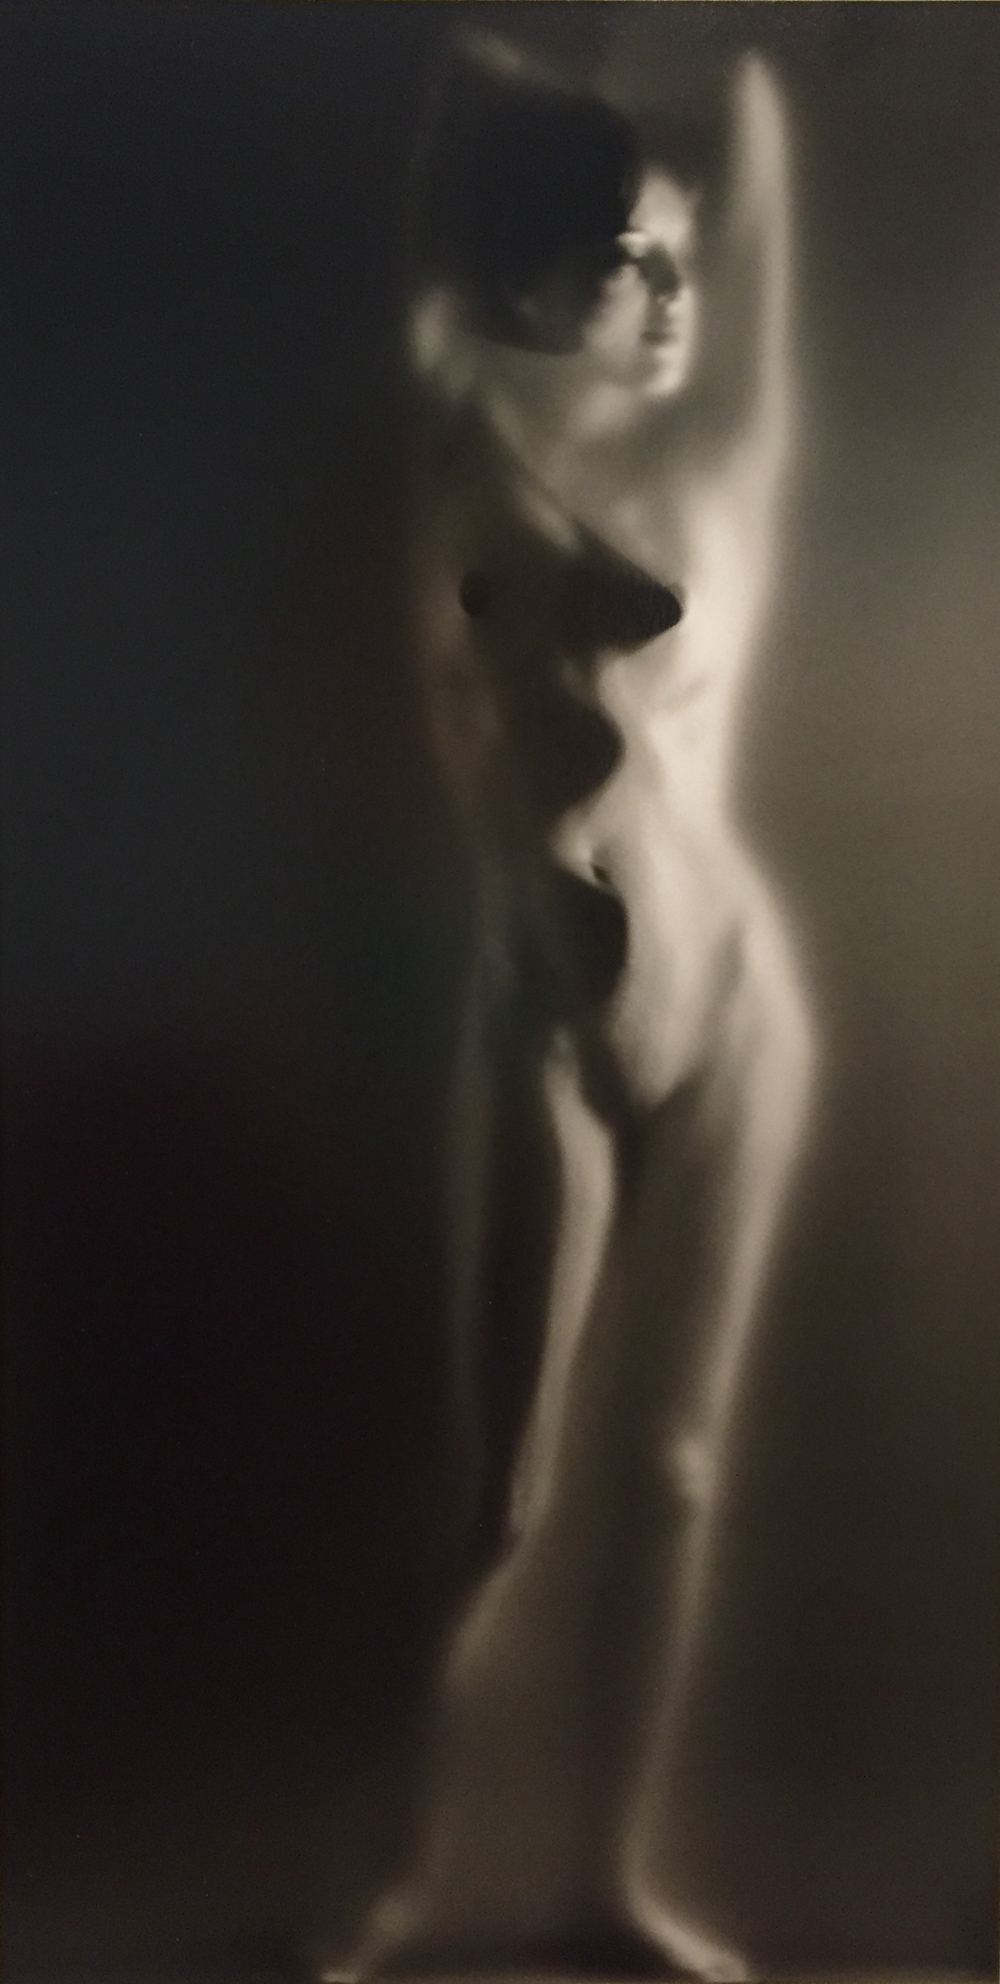 Ruth Bernhard, Luminous Body, 1962, toned gelatin silver print, 13.25 x 6.75 inches, signed by artist, price on request